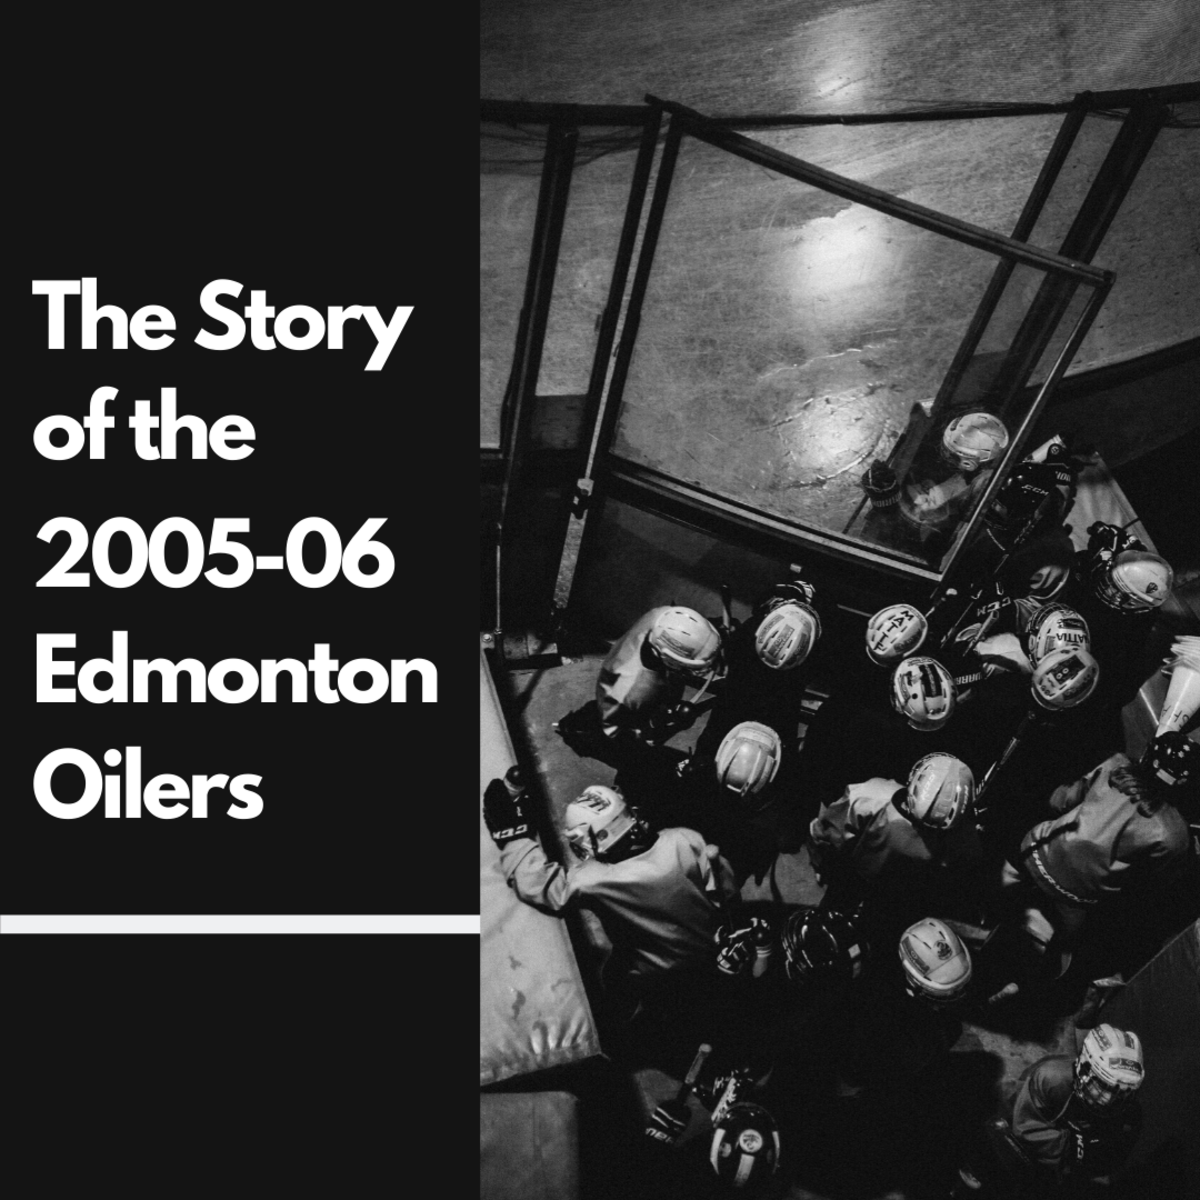 Take a trip down memory lane and recall the Oiler's epic 2005-2006 season.